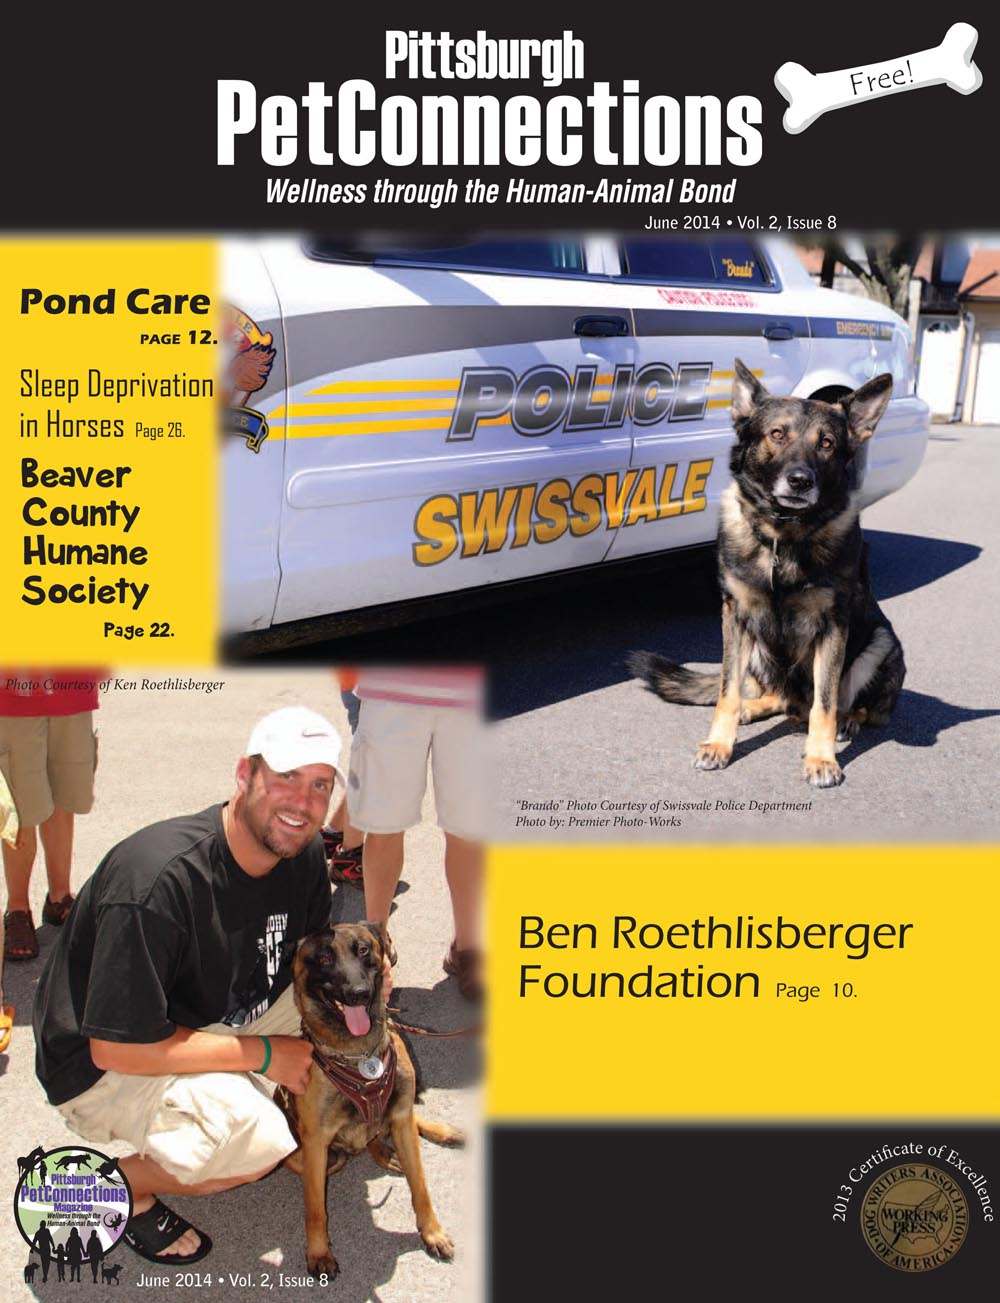 June 2014 issue of Pittsburgh PetConnections magazine.